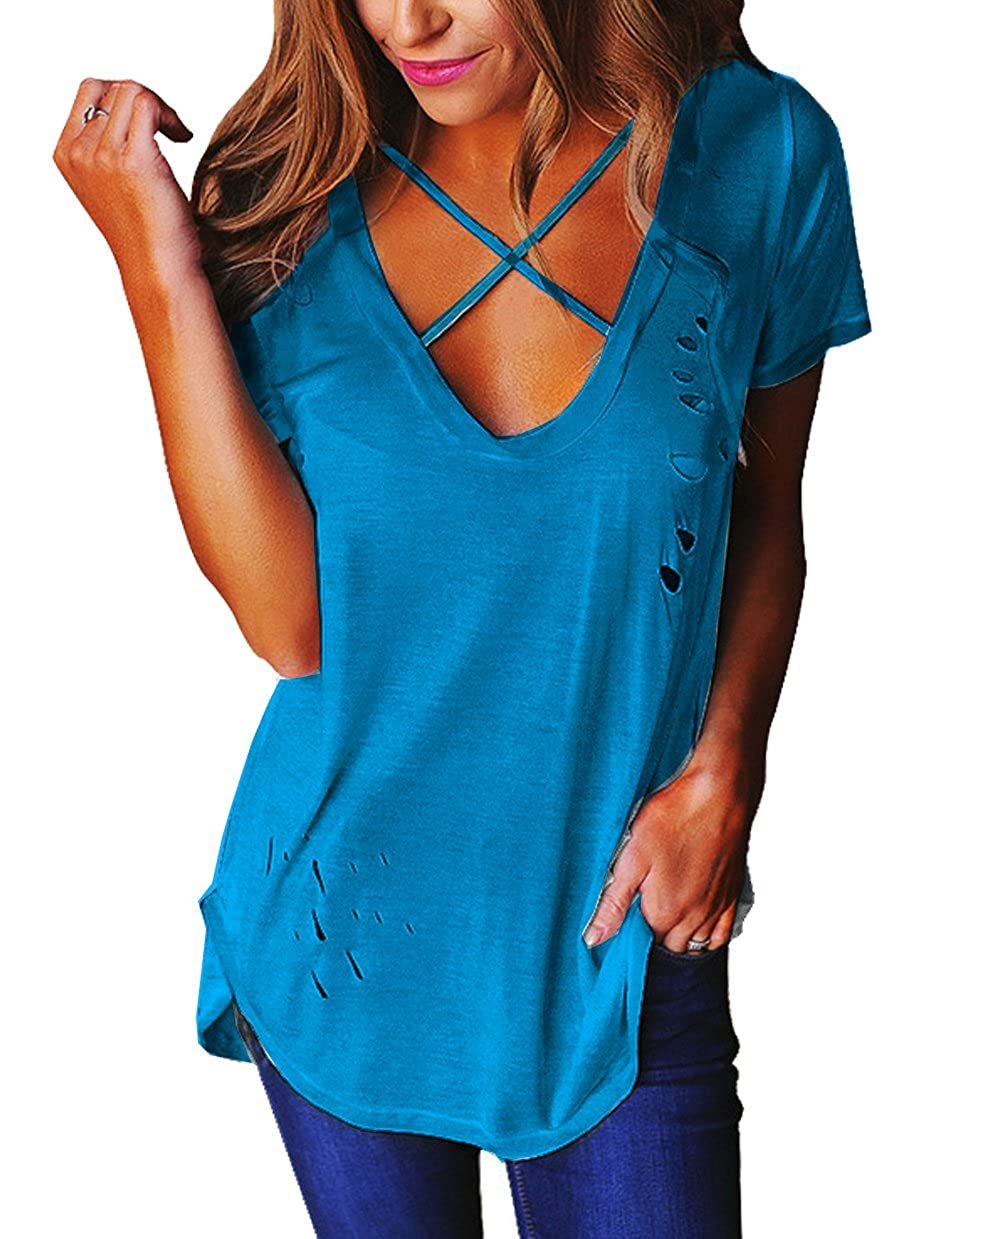 5f1380aa9d9c05 Relipop Women's Fashion Cross Front Deep V Neck Sexy Blouse Tops Shirts at  Amazon Women's Clothing store: